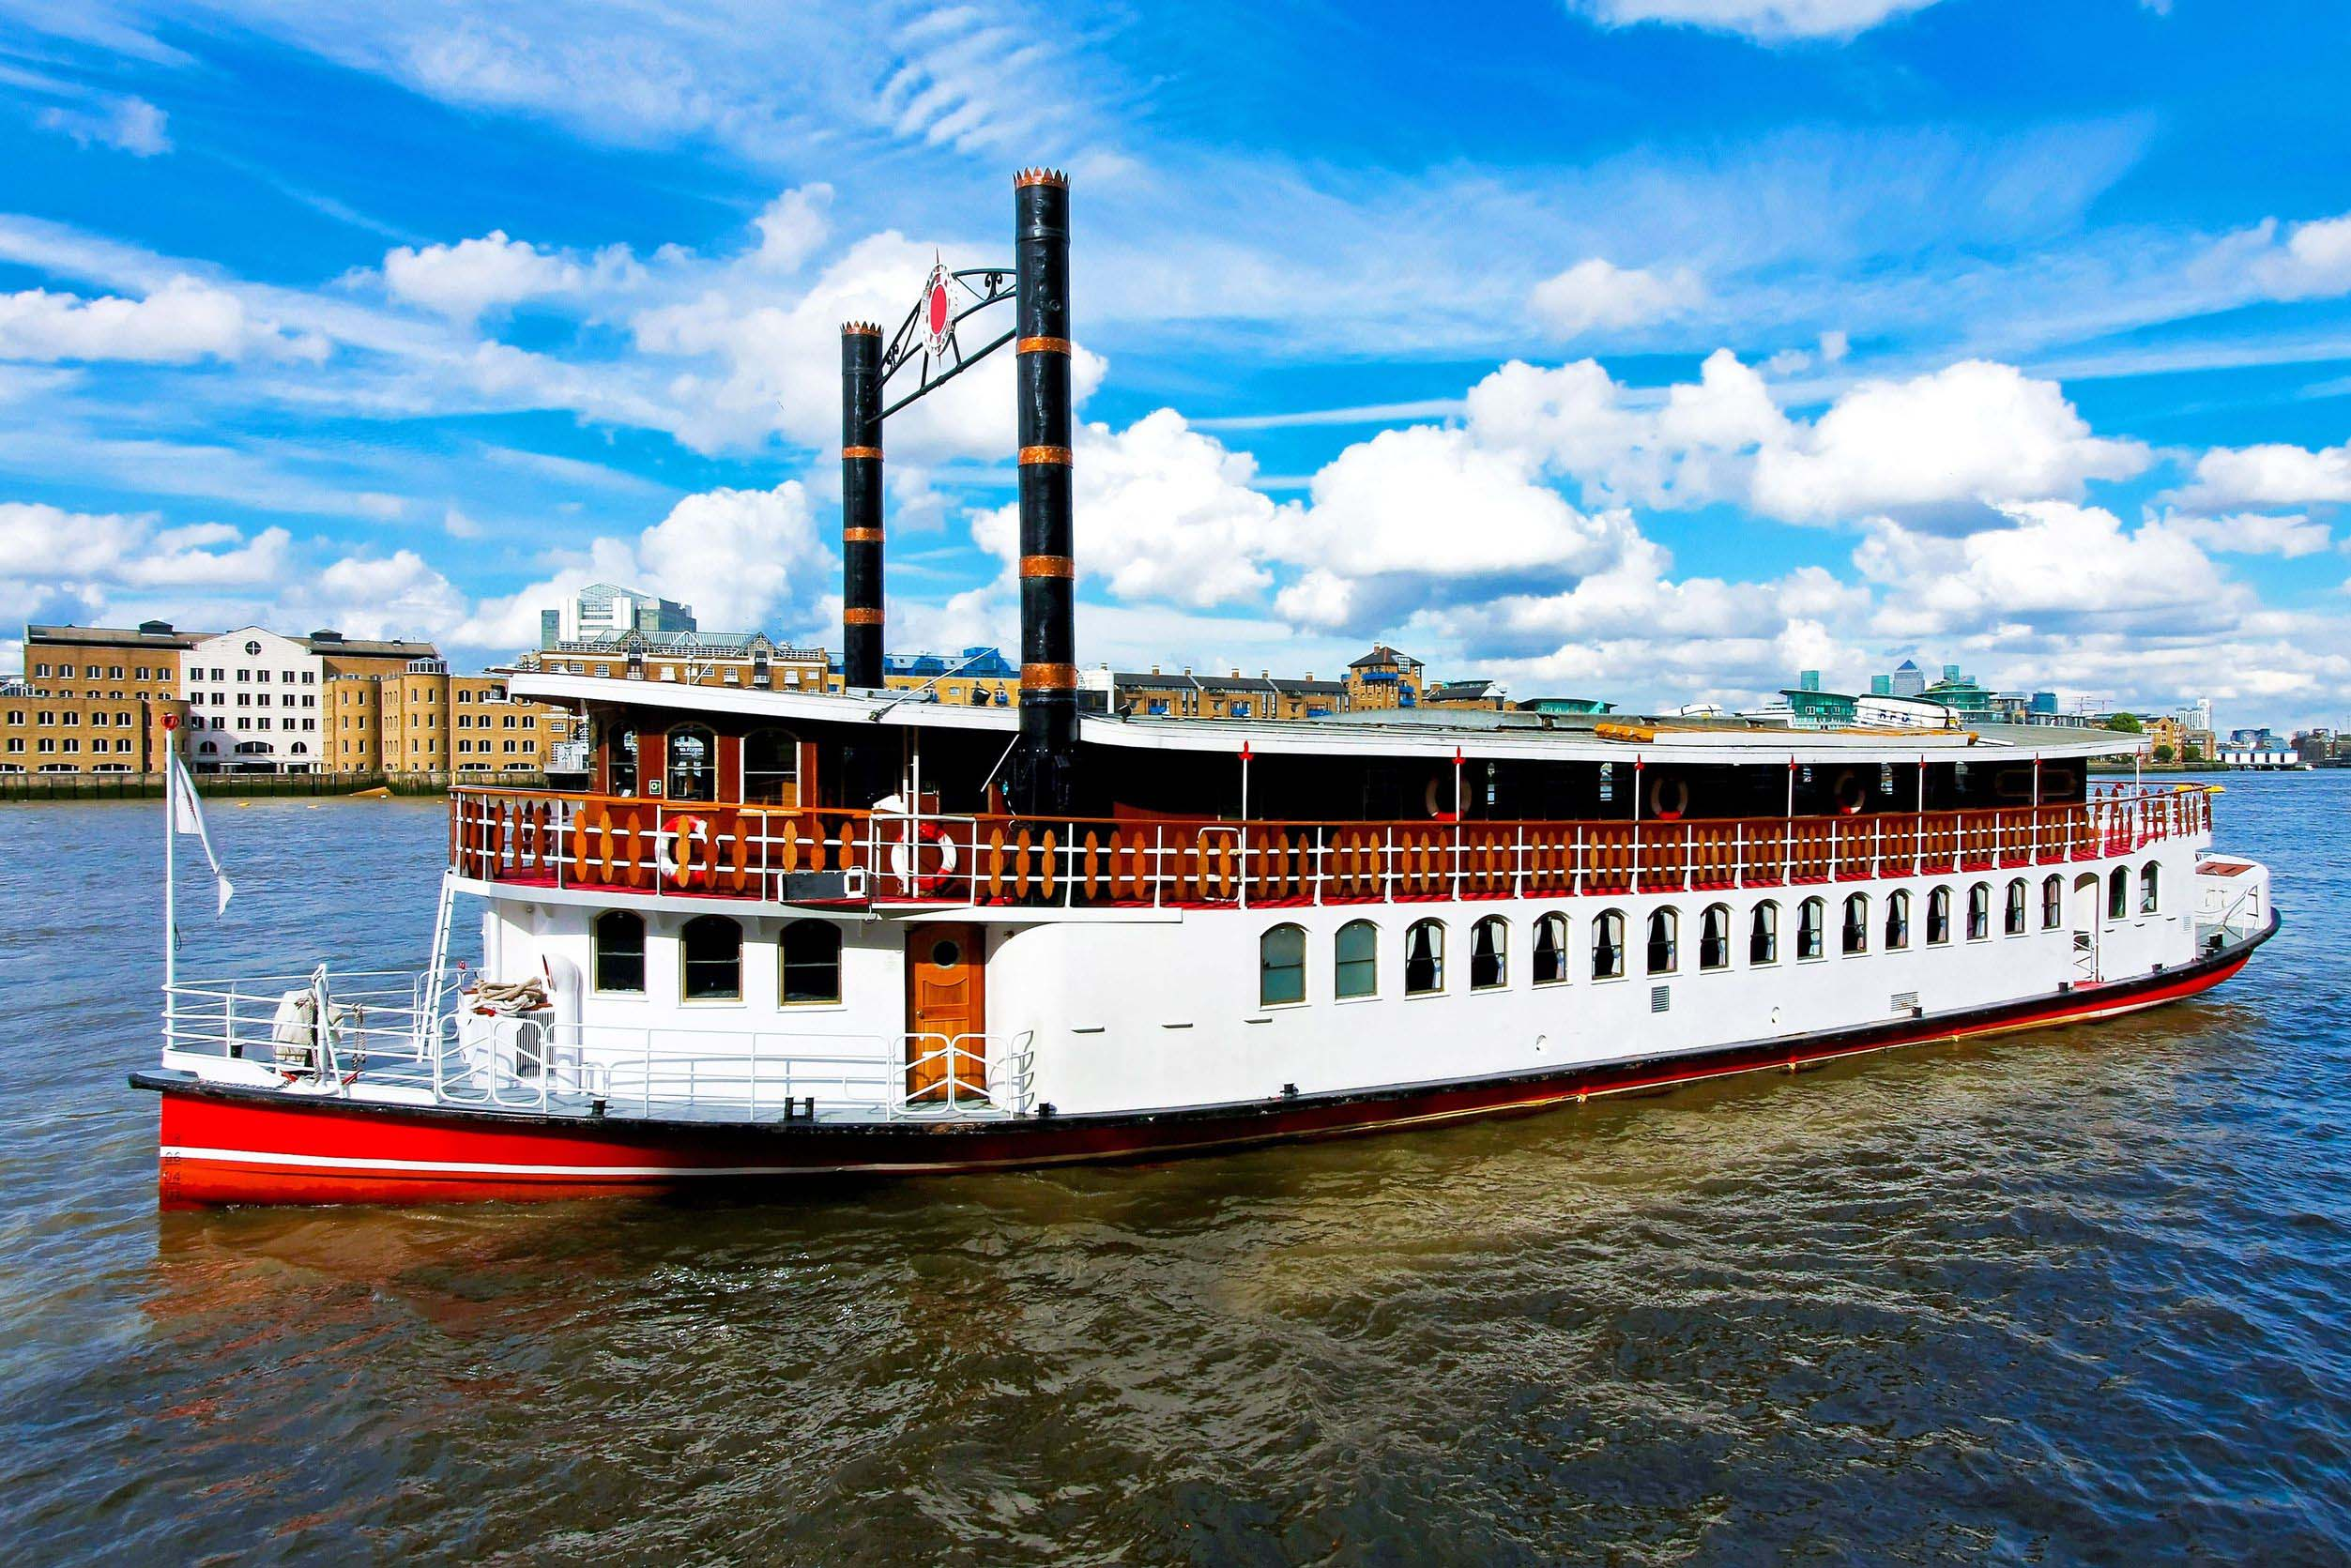 olf-fashioned-steam-boat-missouri-usa